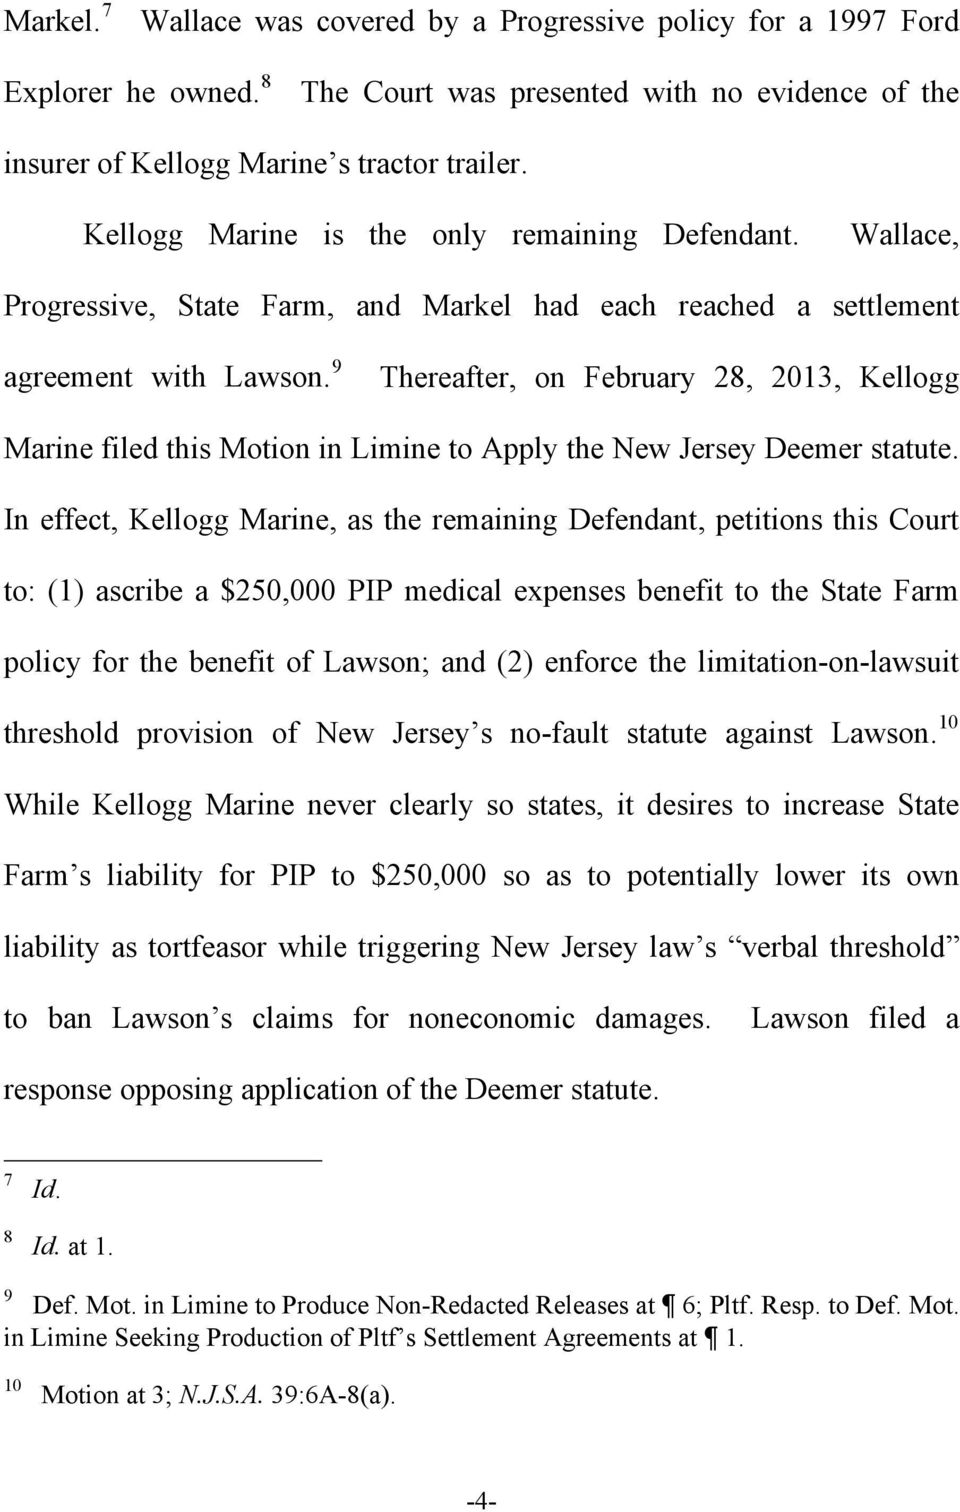 9 Thereafter, on February 28, 2013, Kellogg Marine filed this Motion in Limine to Apply the New Jersey Deemer statute.